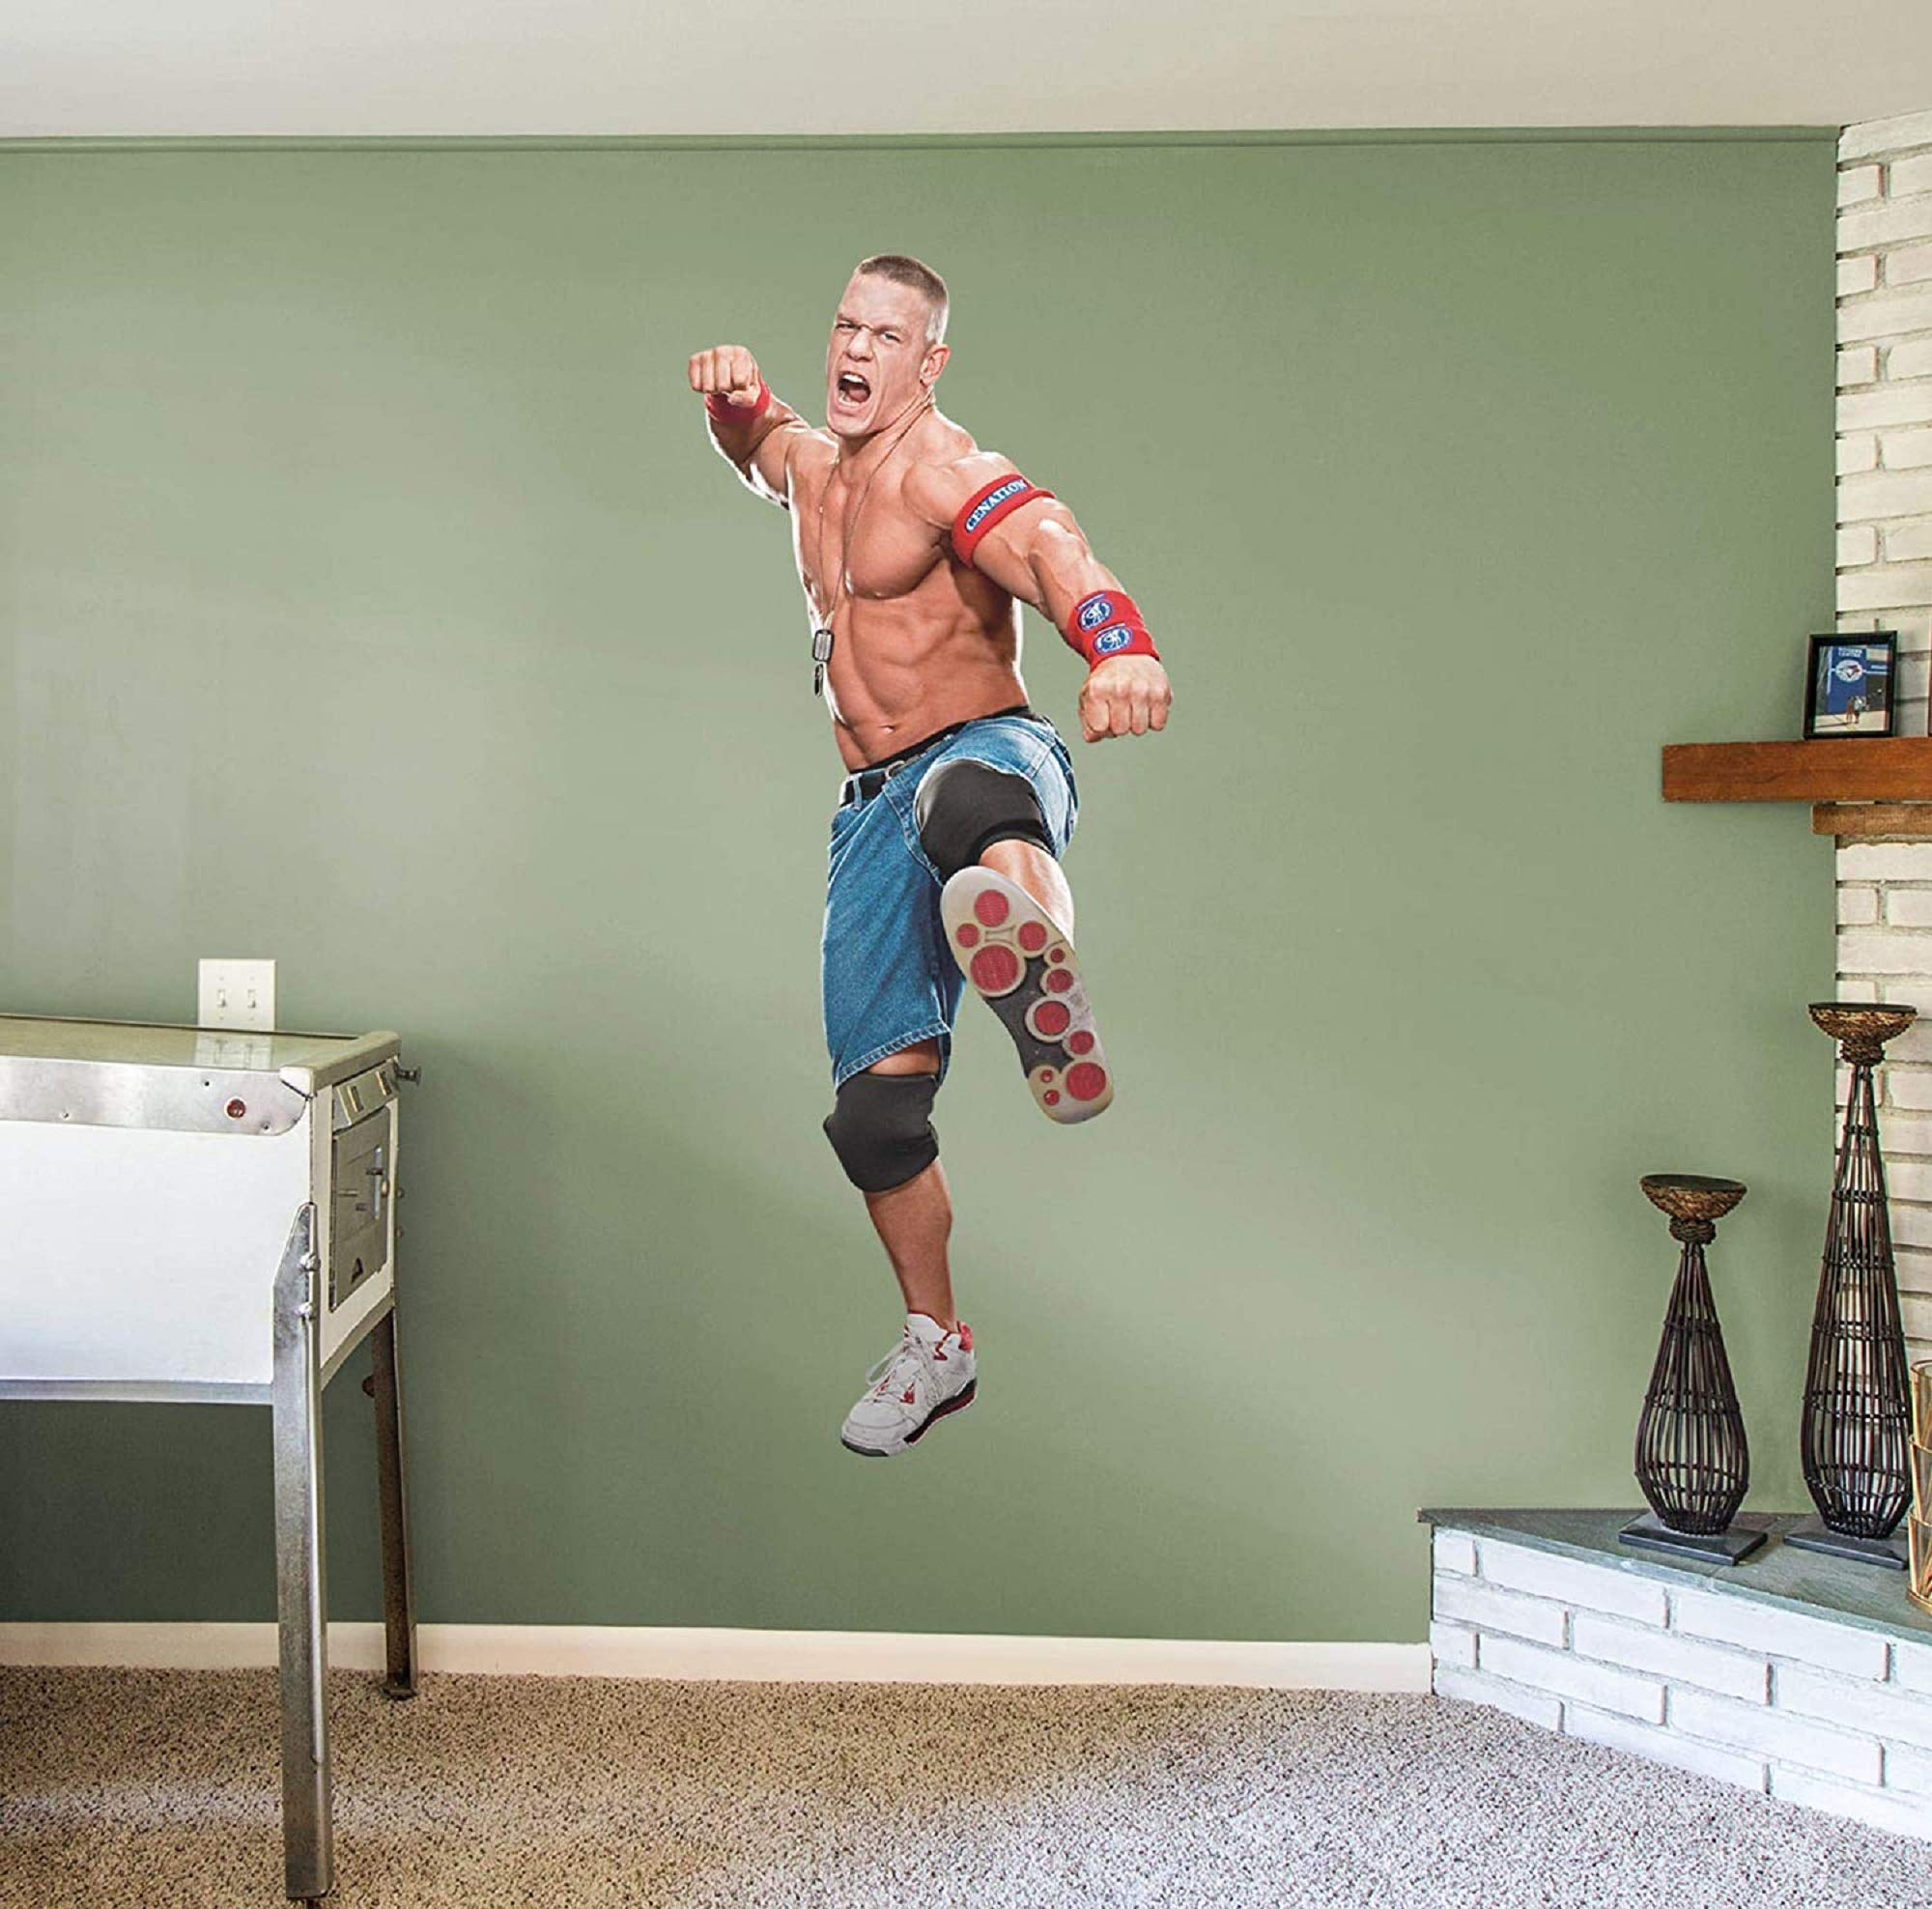 FATHEAD John Cena: Cenation - Life-Size Officially Licensed WWE Removable Wall Decal Multicolor by FATHEAD (Image #1)